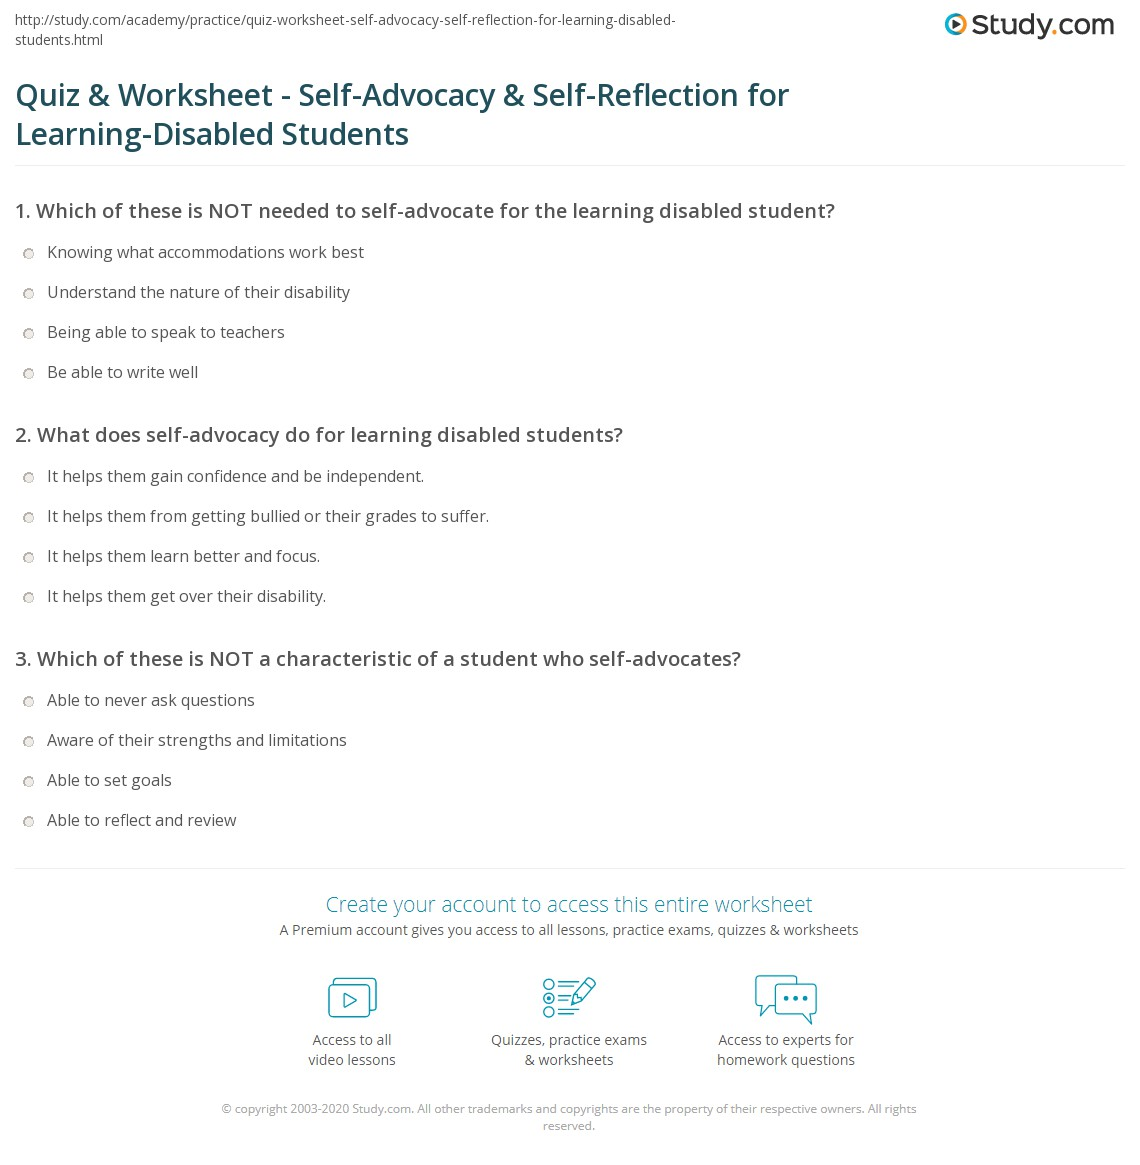 Quiz & Worksheet - Self-Advocacy & Self-Reflection for Learning